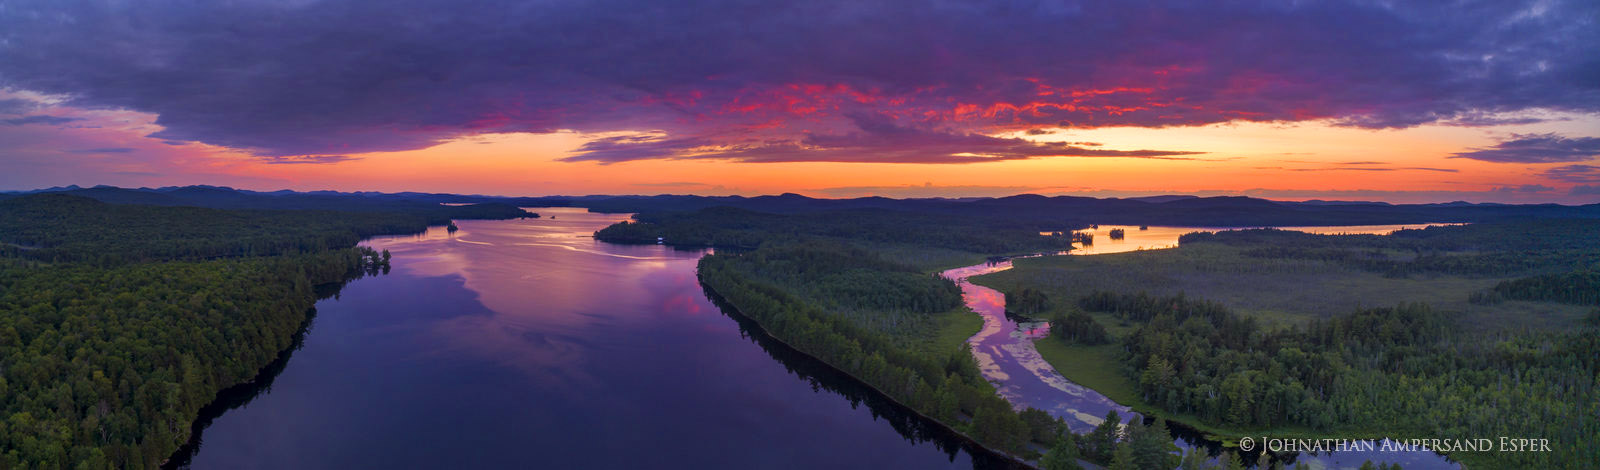 Little Tupper Lake and outlet into Round Lake, summer sunset aerial 150 degree panorama, Whitney Wilderness area, Adirondacks